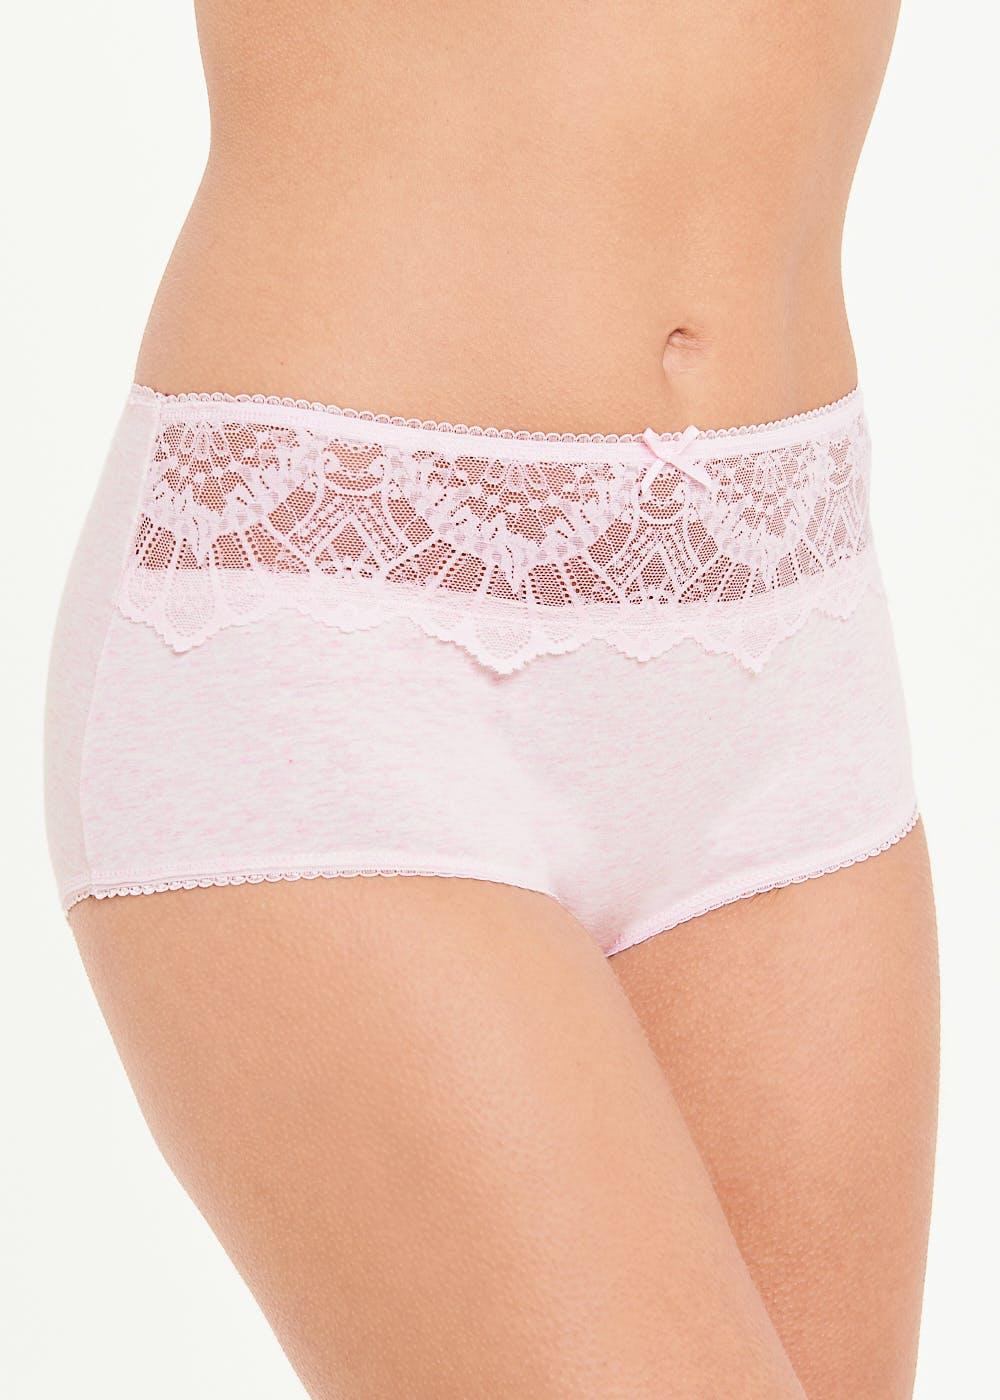 3 Pack Scallop Lace Full Knickers – Multi